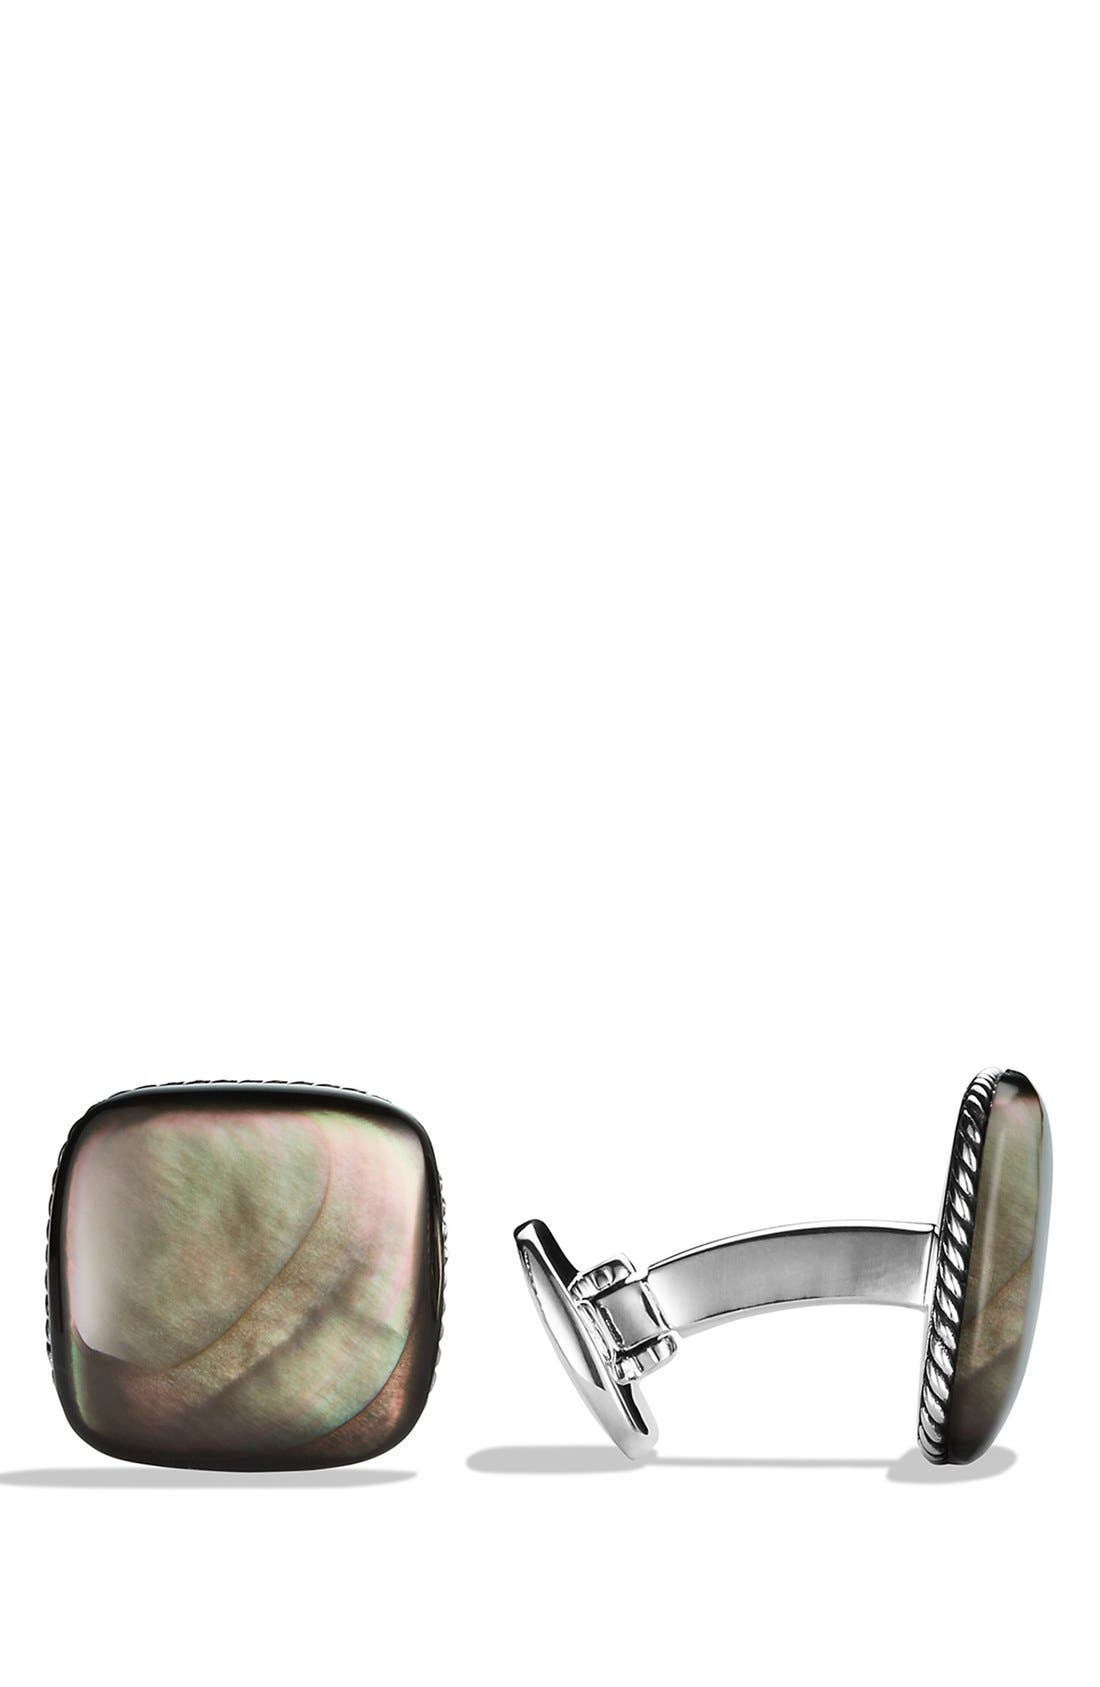 Alternate Image 1 Selected - David Yurman 'Streamline' Cuff Links with Black Mother-of-Pearl